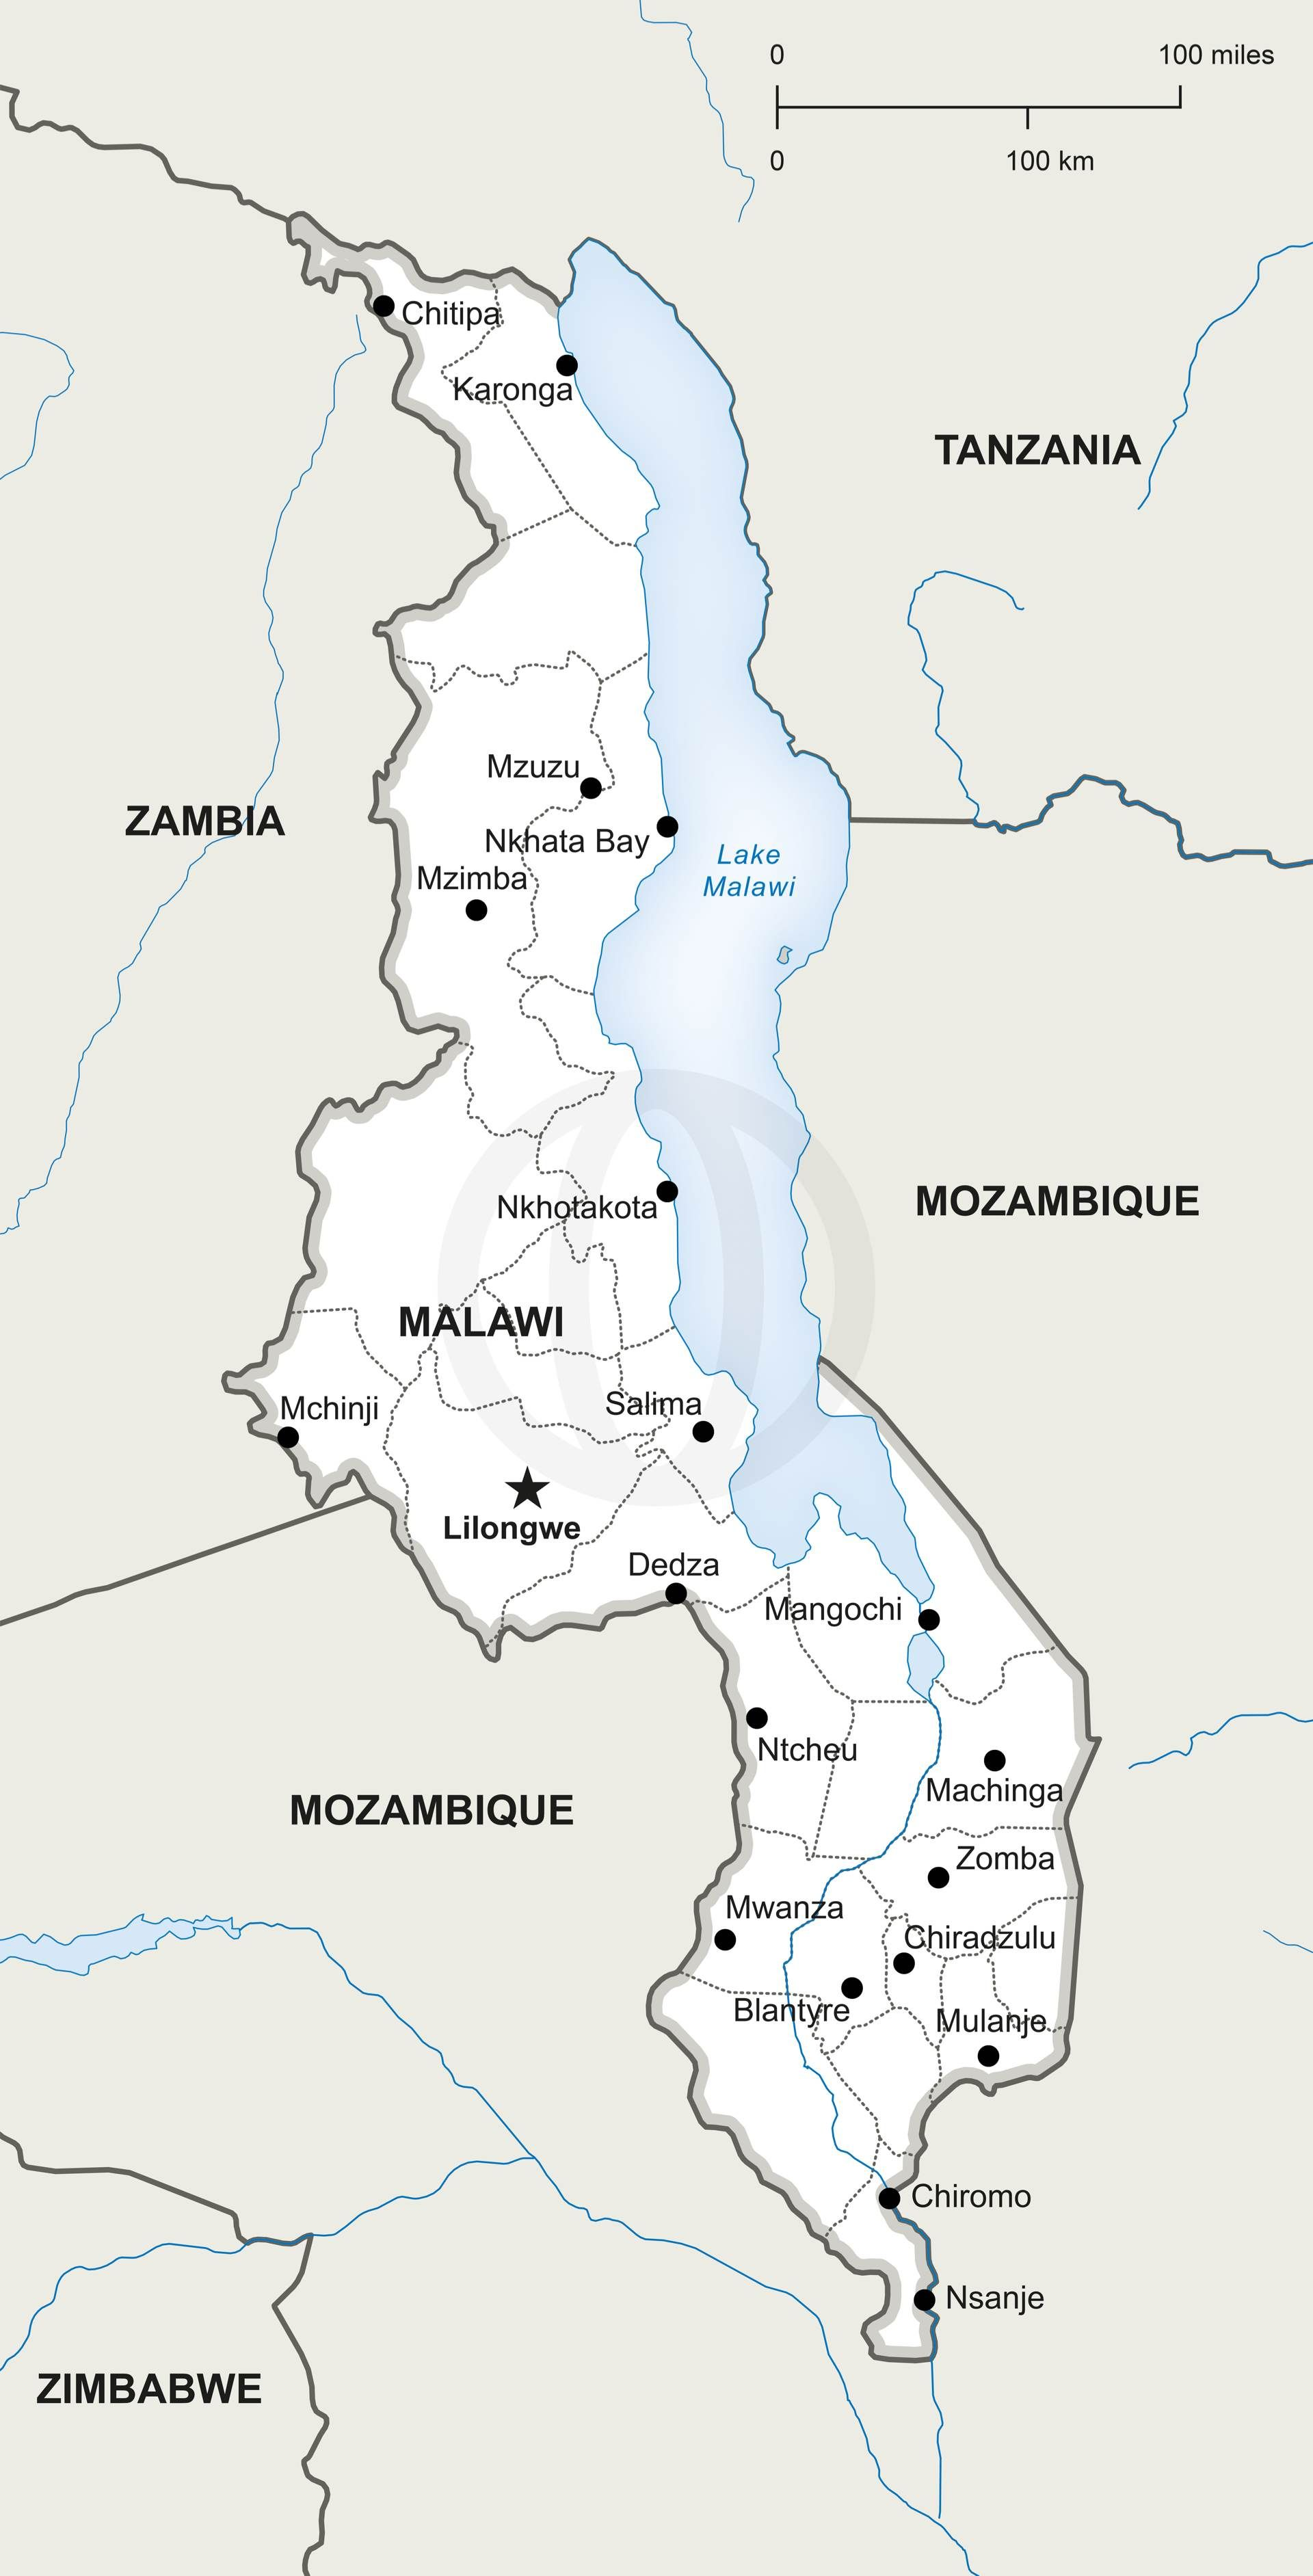 Map of Malawi political | Map, Map vector, Africa map Malawi Africa Map on malawi religion, malawi food, malawi currency, europe map, malawi culture, malawi animals, malawi president, malawi landscape, malawi army, world map, malawi people, malawi flag, malawi sports, malawi houses, malawi capital, malawi wildlife,